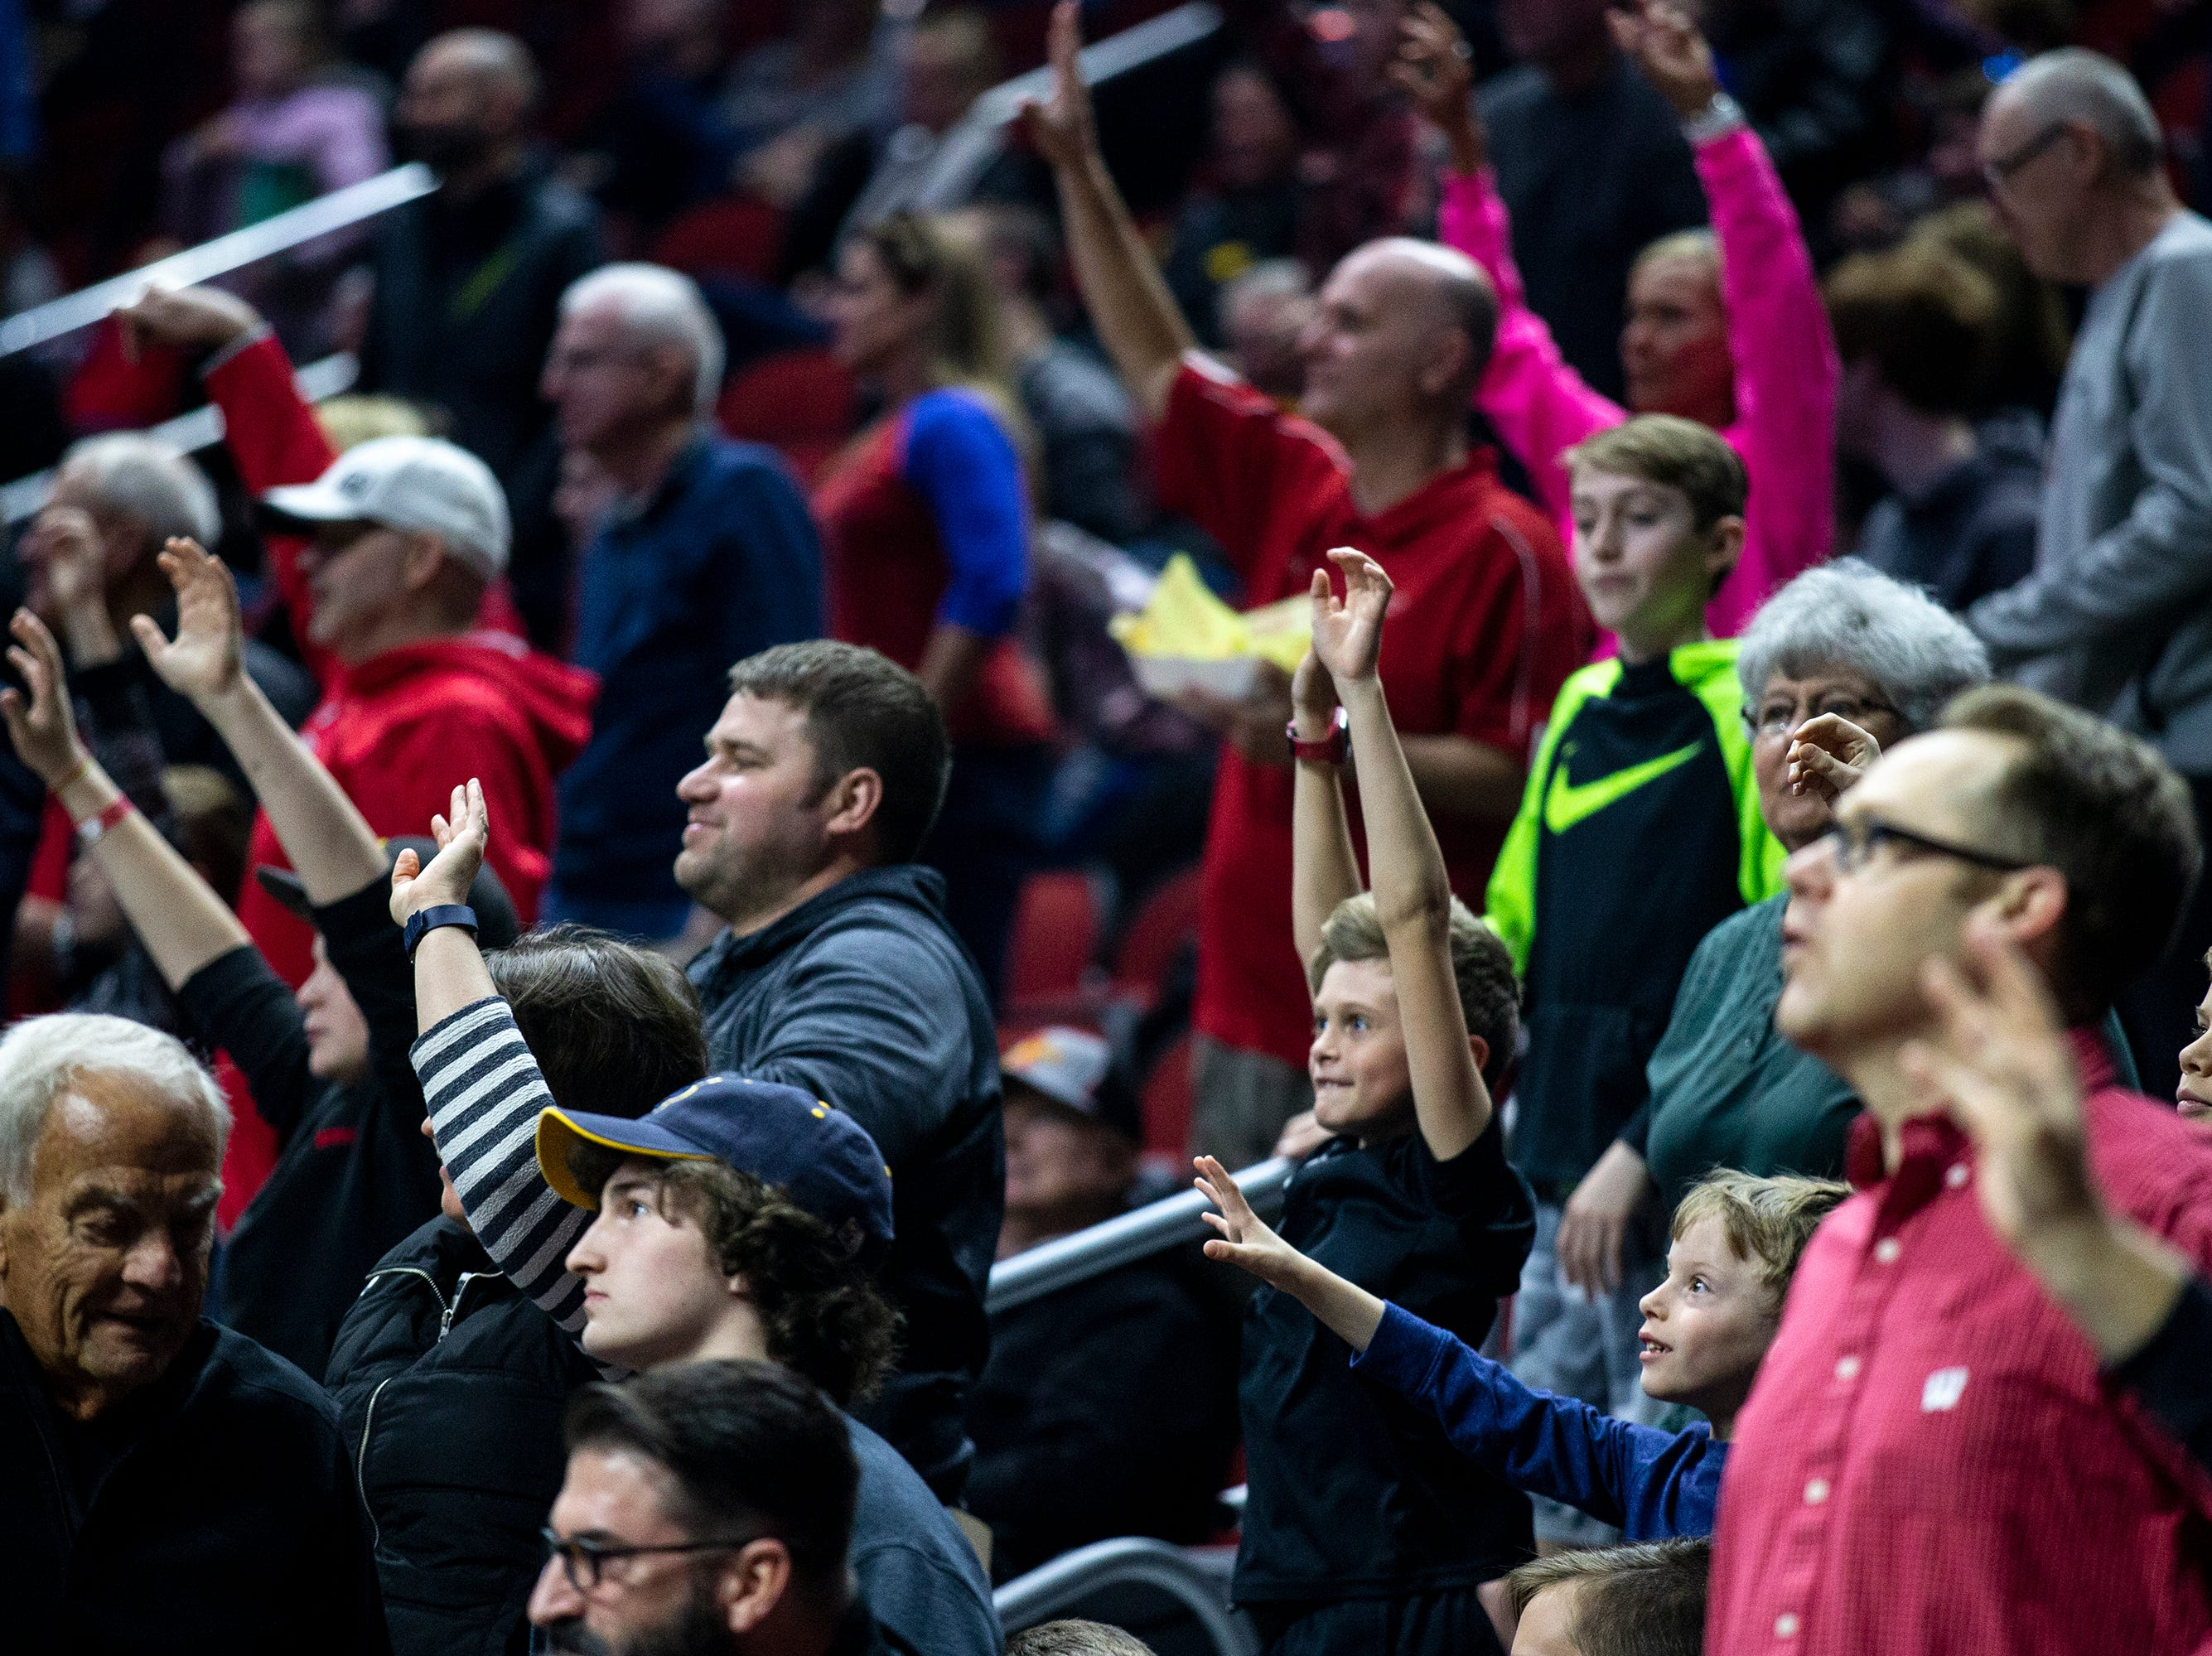 Fans put their hands in the air hoping to catch a t-shirt thrown into the stands during Minnesota's open practice before the first round of the NCAA Men's Basketball Tournament on Wednesday, March 20, 2019, at Wells Fargo Arena in Des Moines, Iowa. Minnesota will face Louisville in the first round on Thursday.